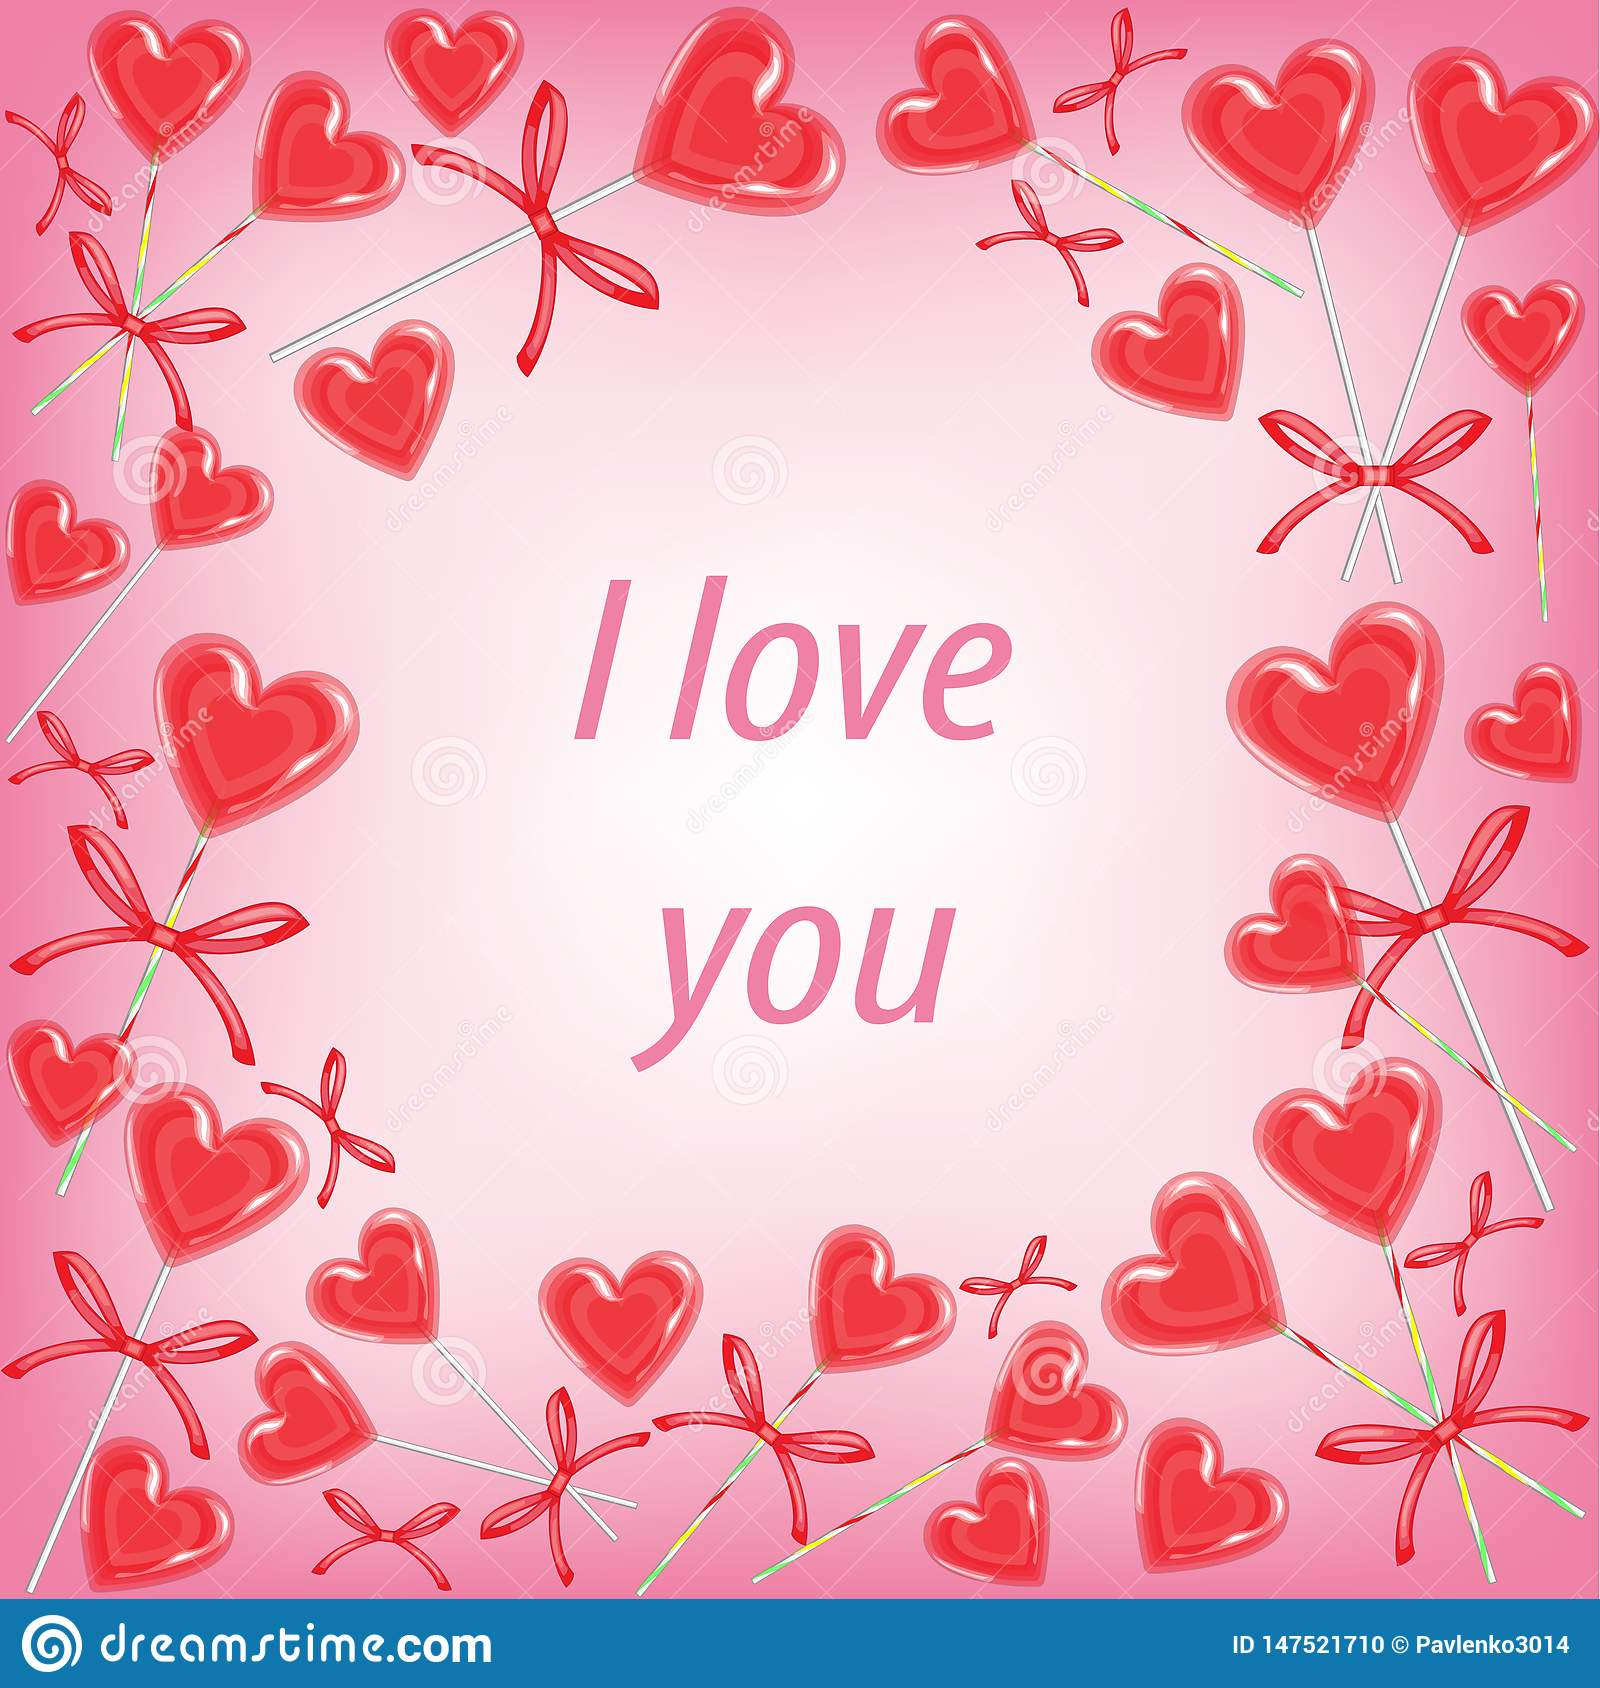 Original frame for photos and text. Sweet heart candy. A perfect gift for Valentine s Day. Vector illustration